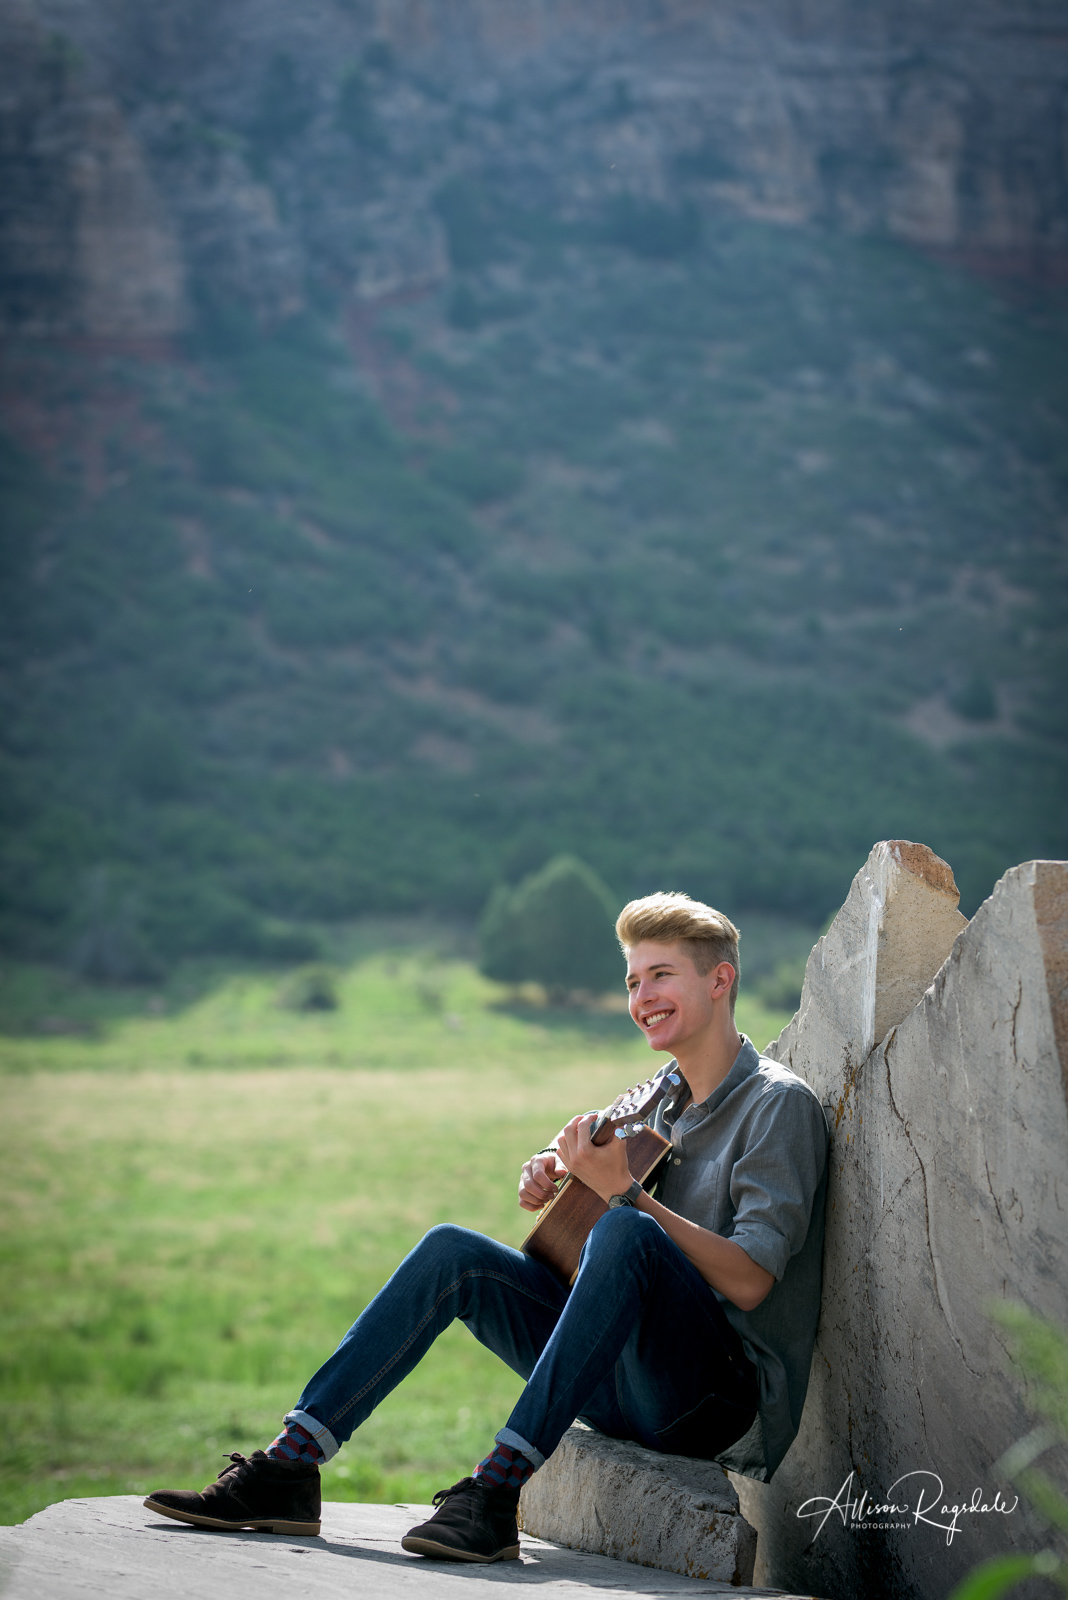 Ian Mattox's Senior Pictures | Durango Colorado